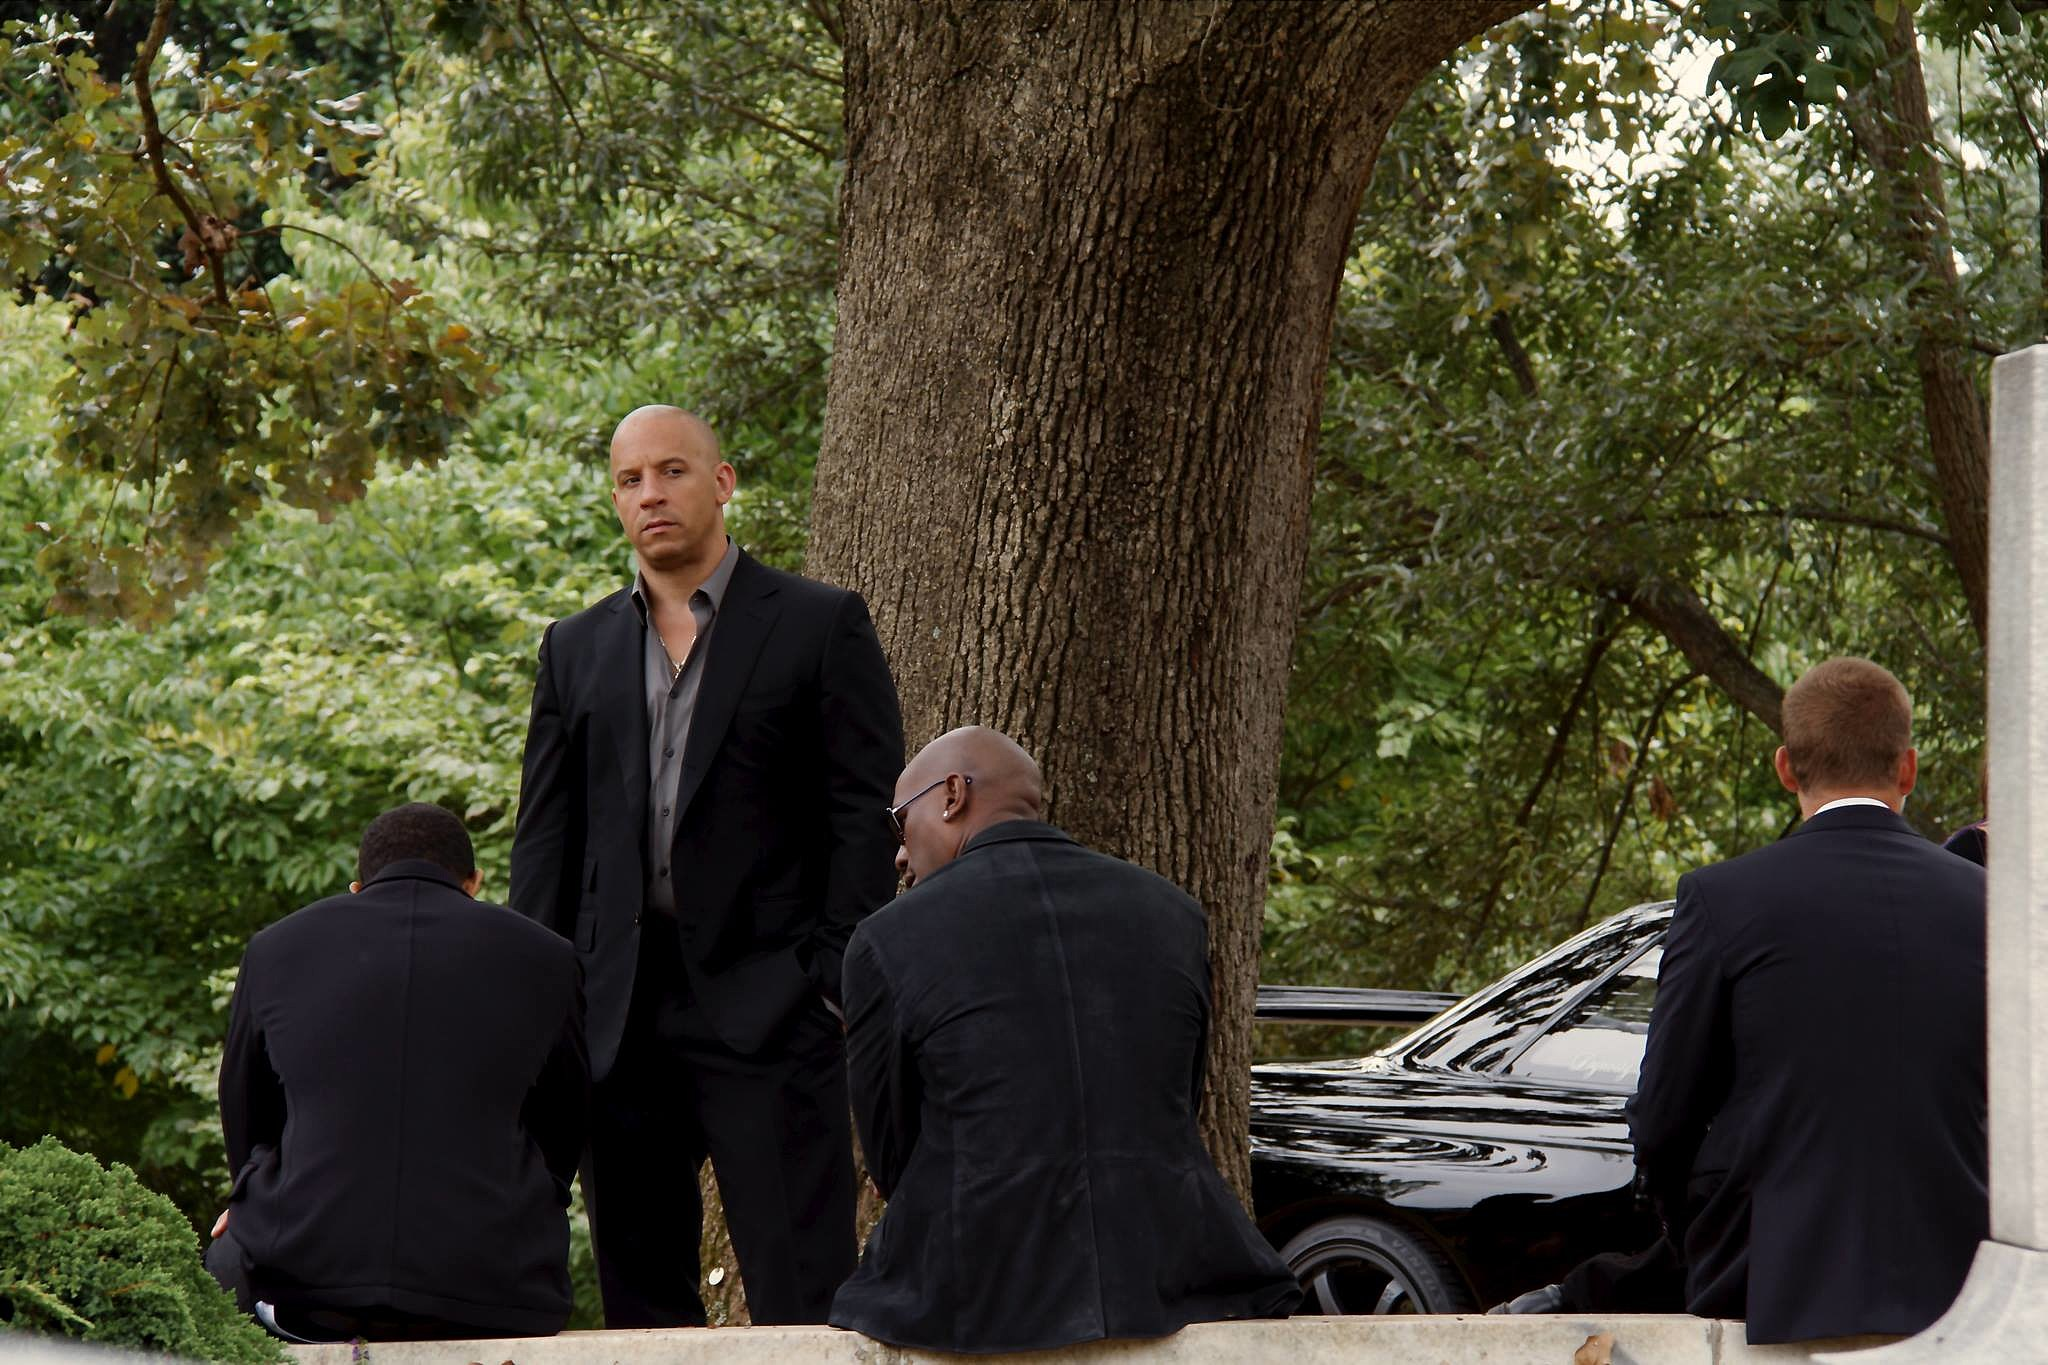 fast and furious 7 funeral Fast and Furious 7′: Vin Diesel Teases a Funeral Scene in New Image